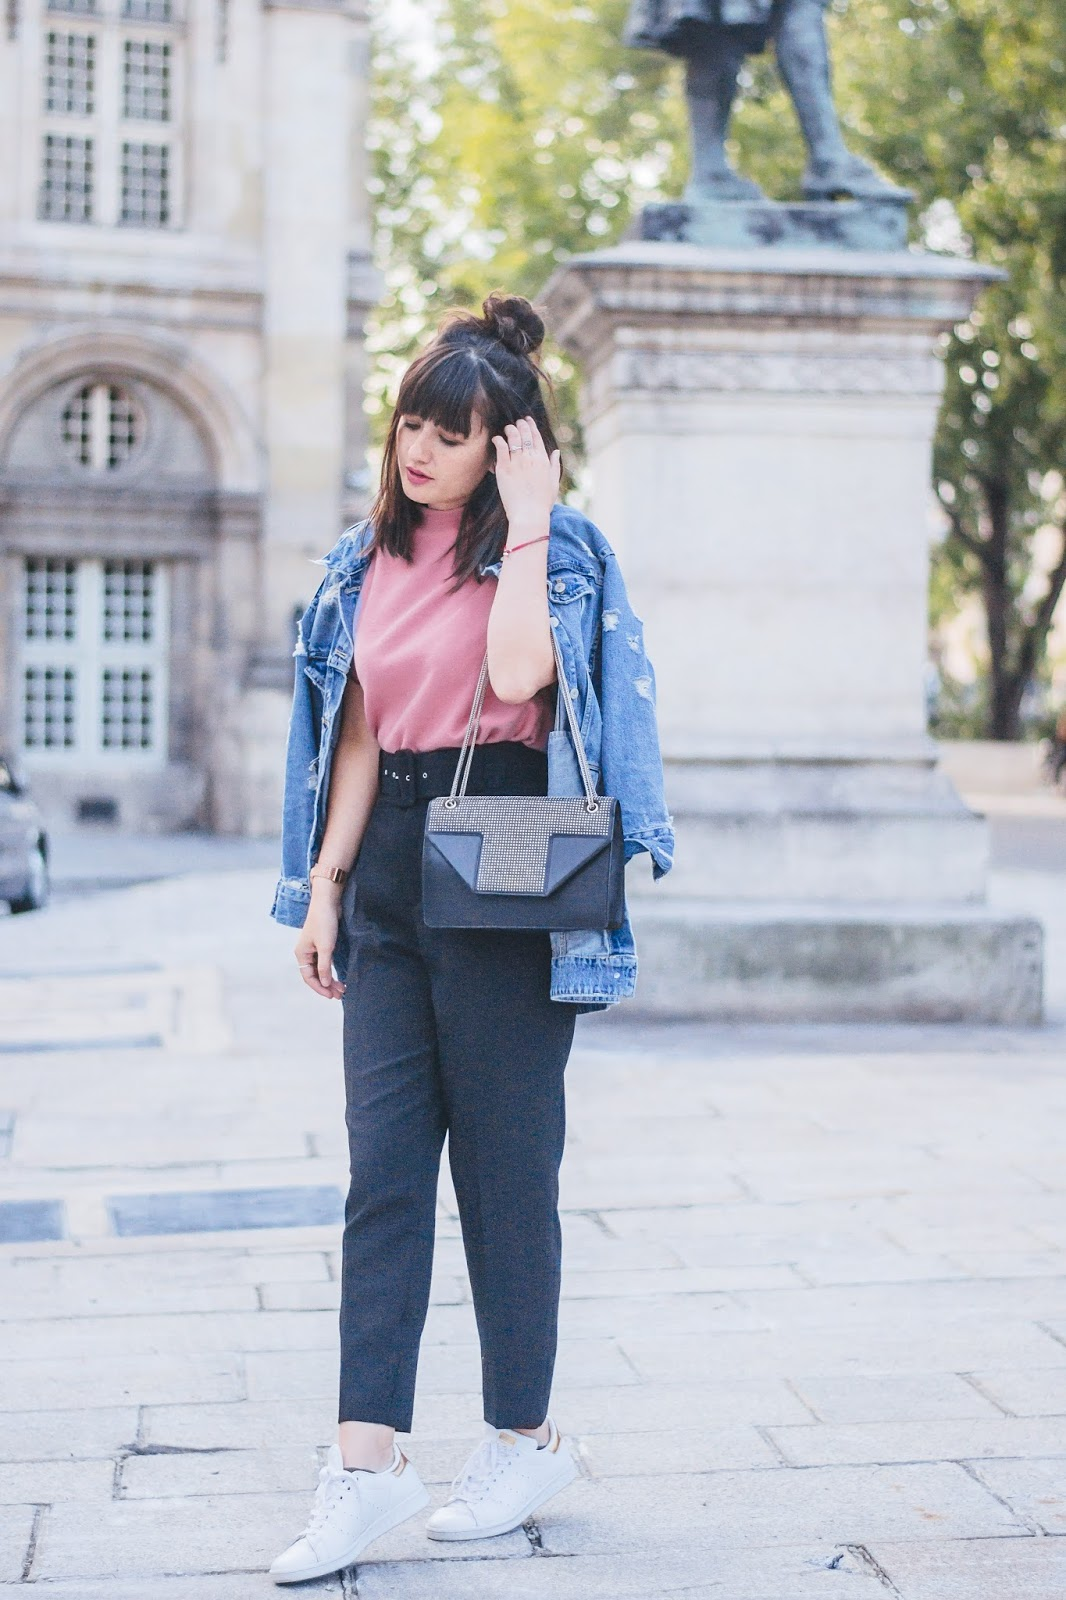 meetmeinparee-style-look-mode-fashion-ootd-streetstyle-cool-autumnstyling